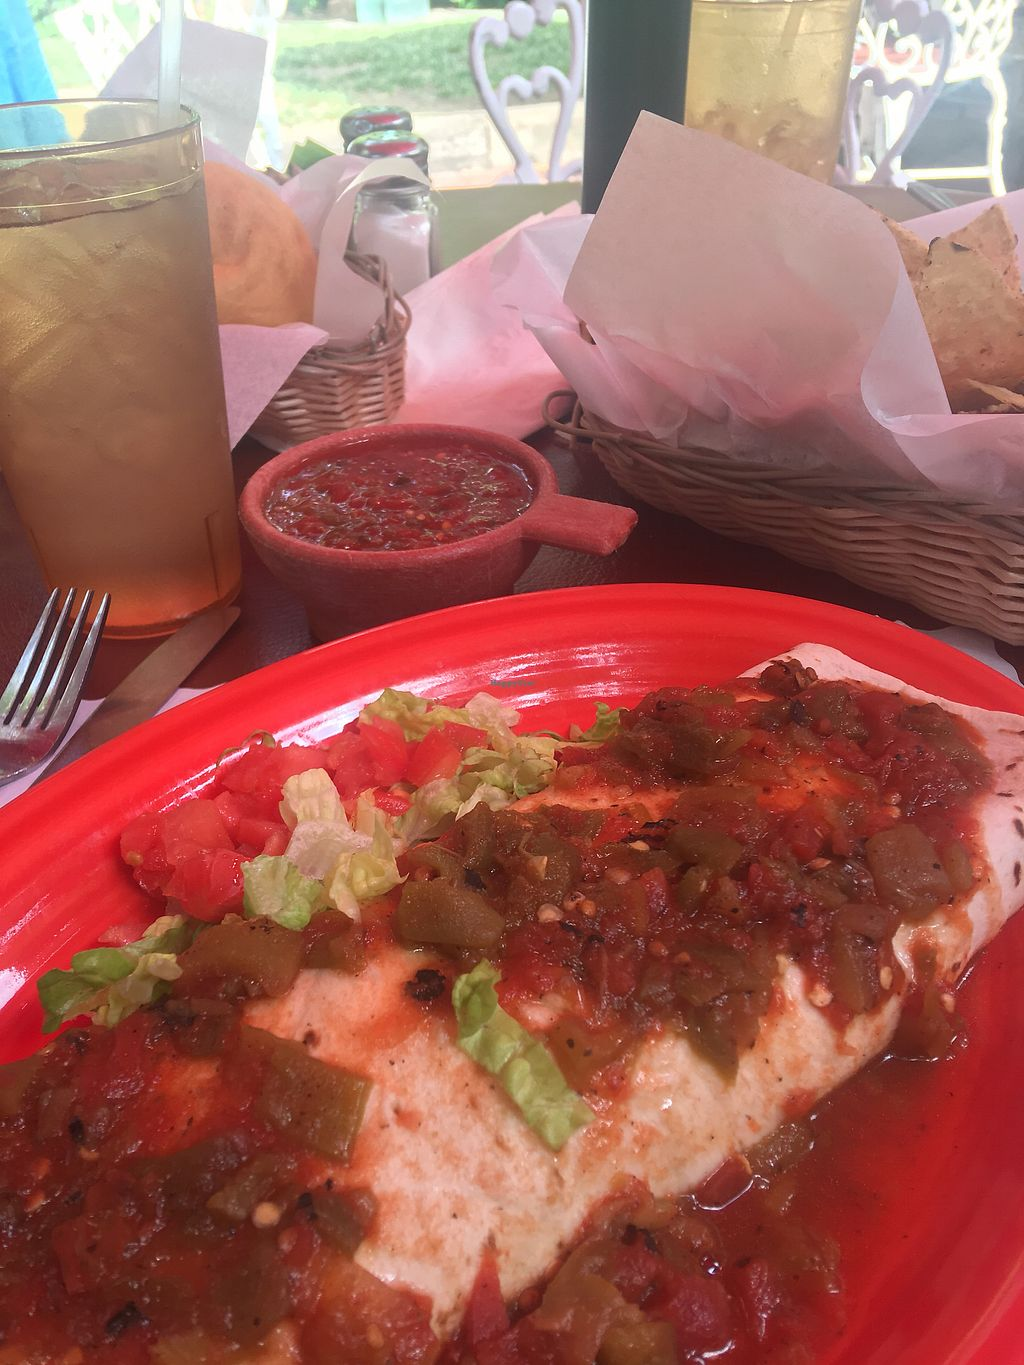 """Photo of El Patio  by <a href=""""/members/profile/VeganCU12"""">VeganCU12</a> <br/>Vegetarian burrito with no cheese!   <br/> July 8, 2017  - <a href='/contact/abuse/image/6946/277719'>Report</a>"""